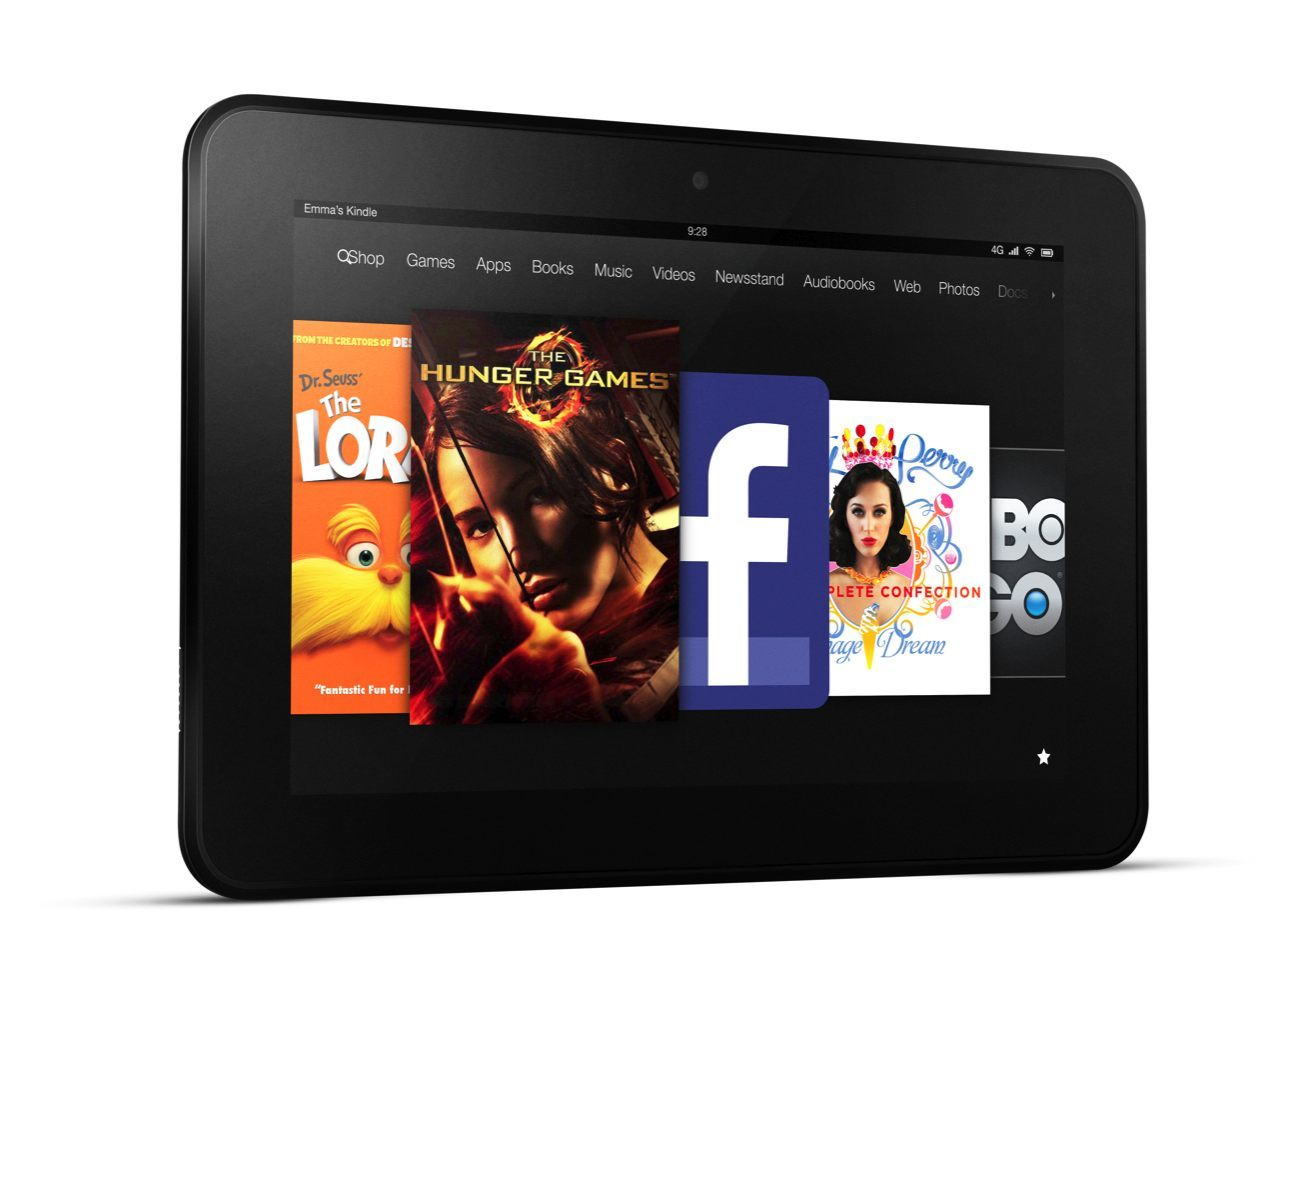 Foto de Kindle Fire HD 8.9 (6/10)